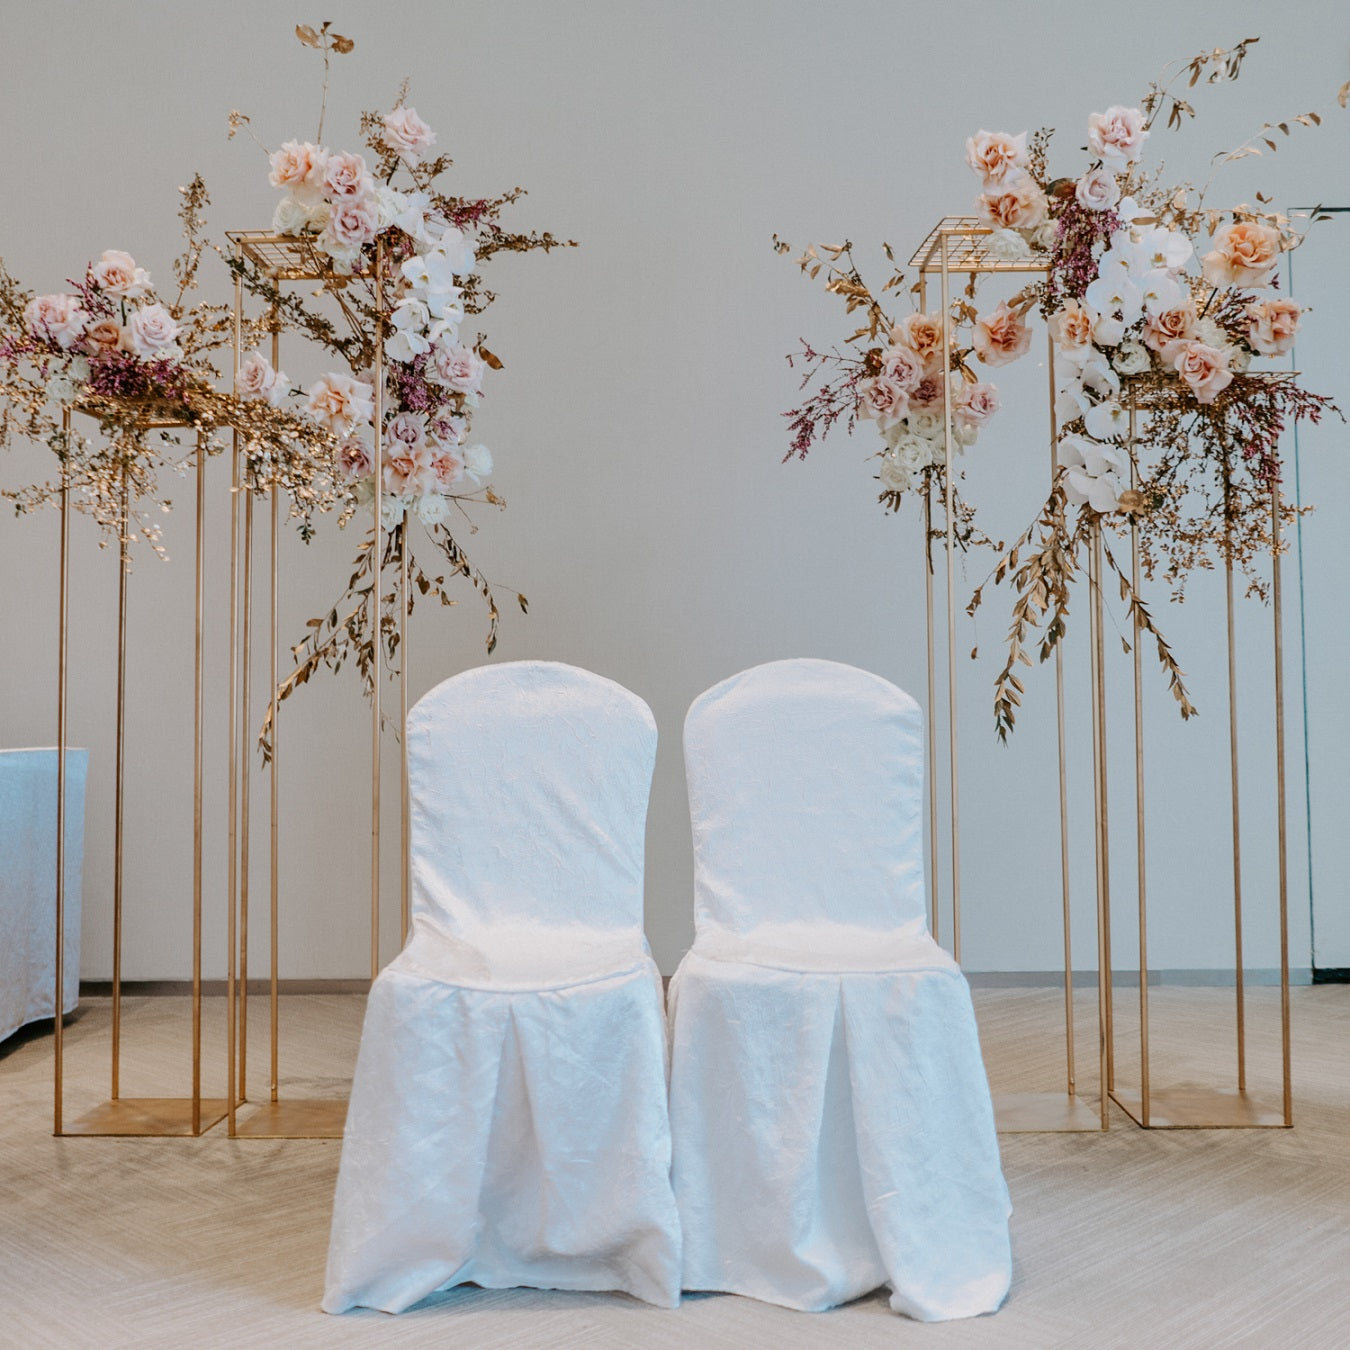 Wedding chair decorations with white chair covers for wedding banquet at Sentosa aquarium wedding